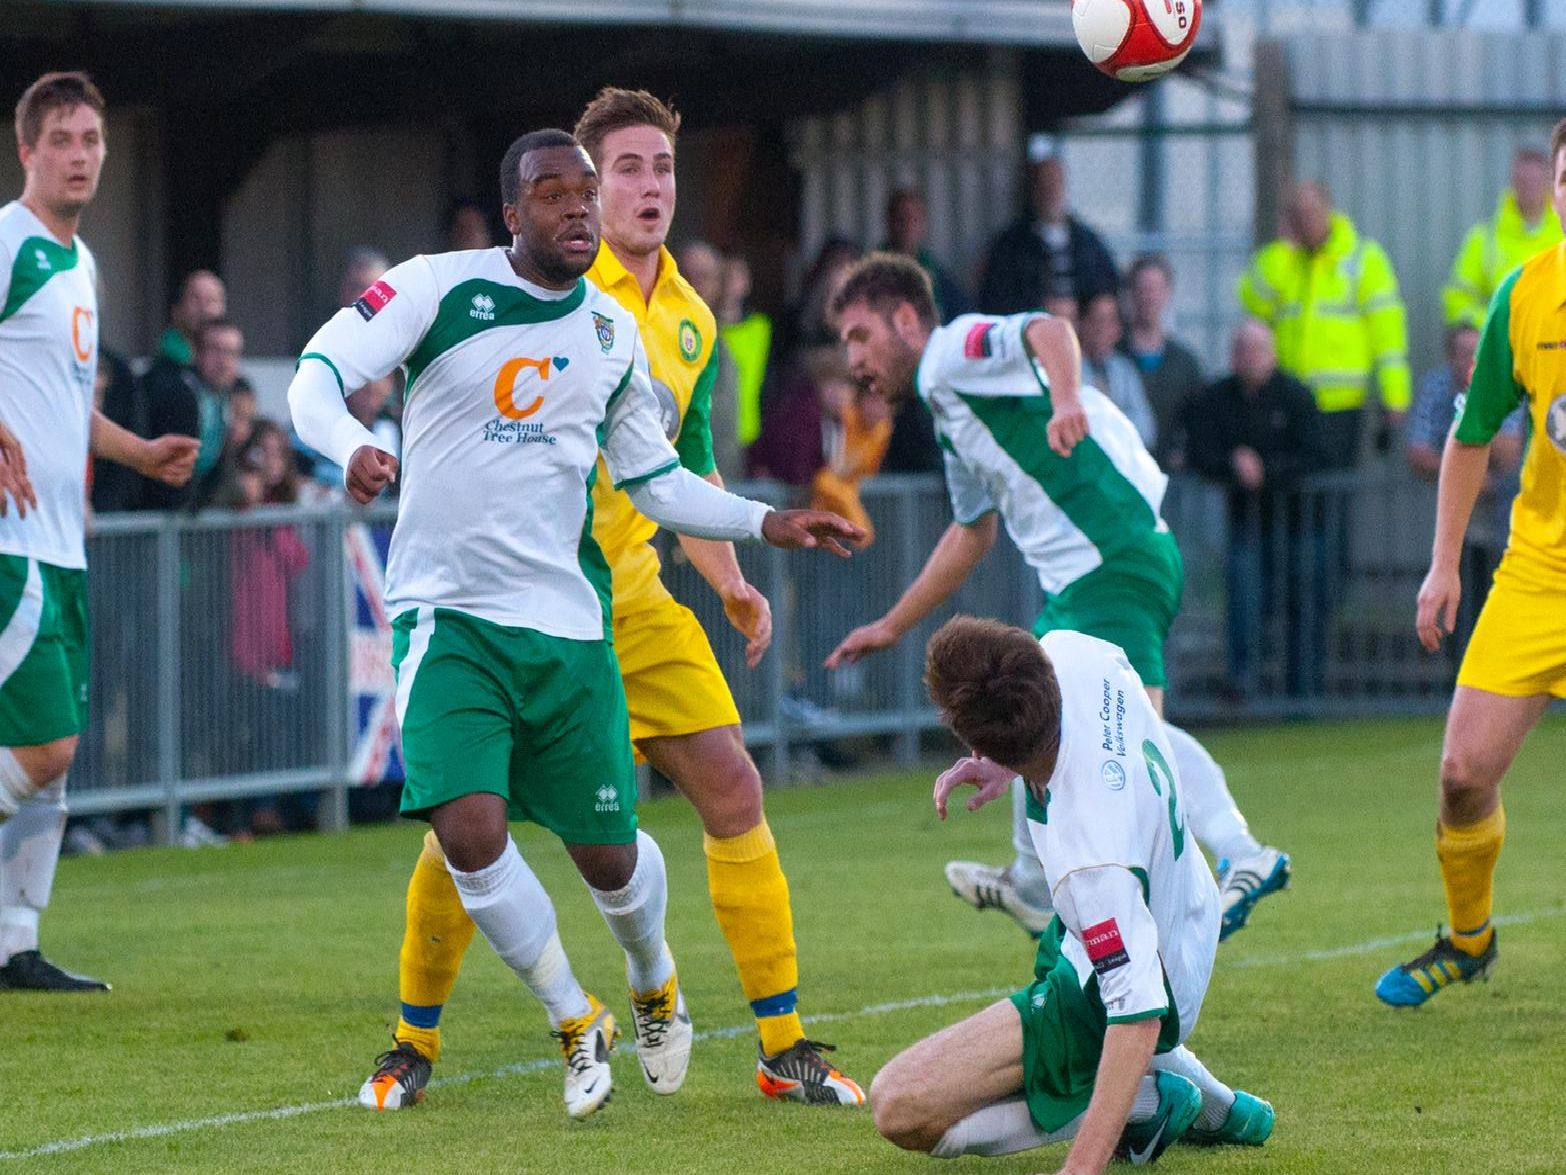 The Rocks draw 4-4 with Godalming in the play-off semi-final before winning on penalties / Picture by Tommy McMillan